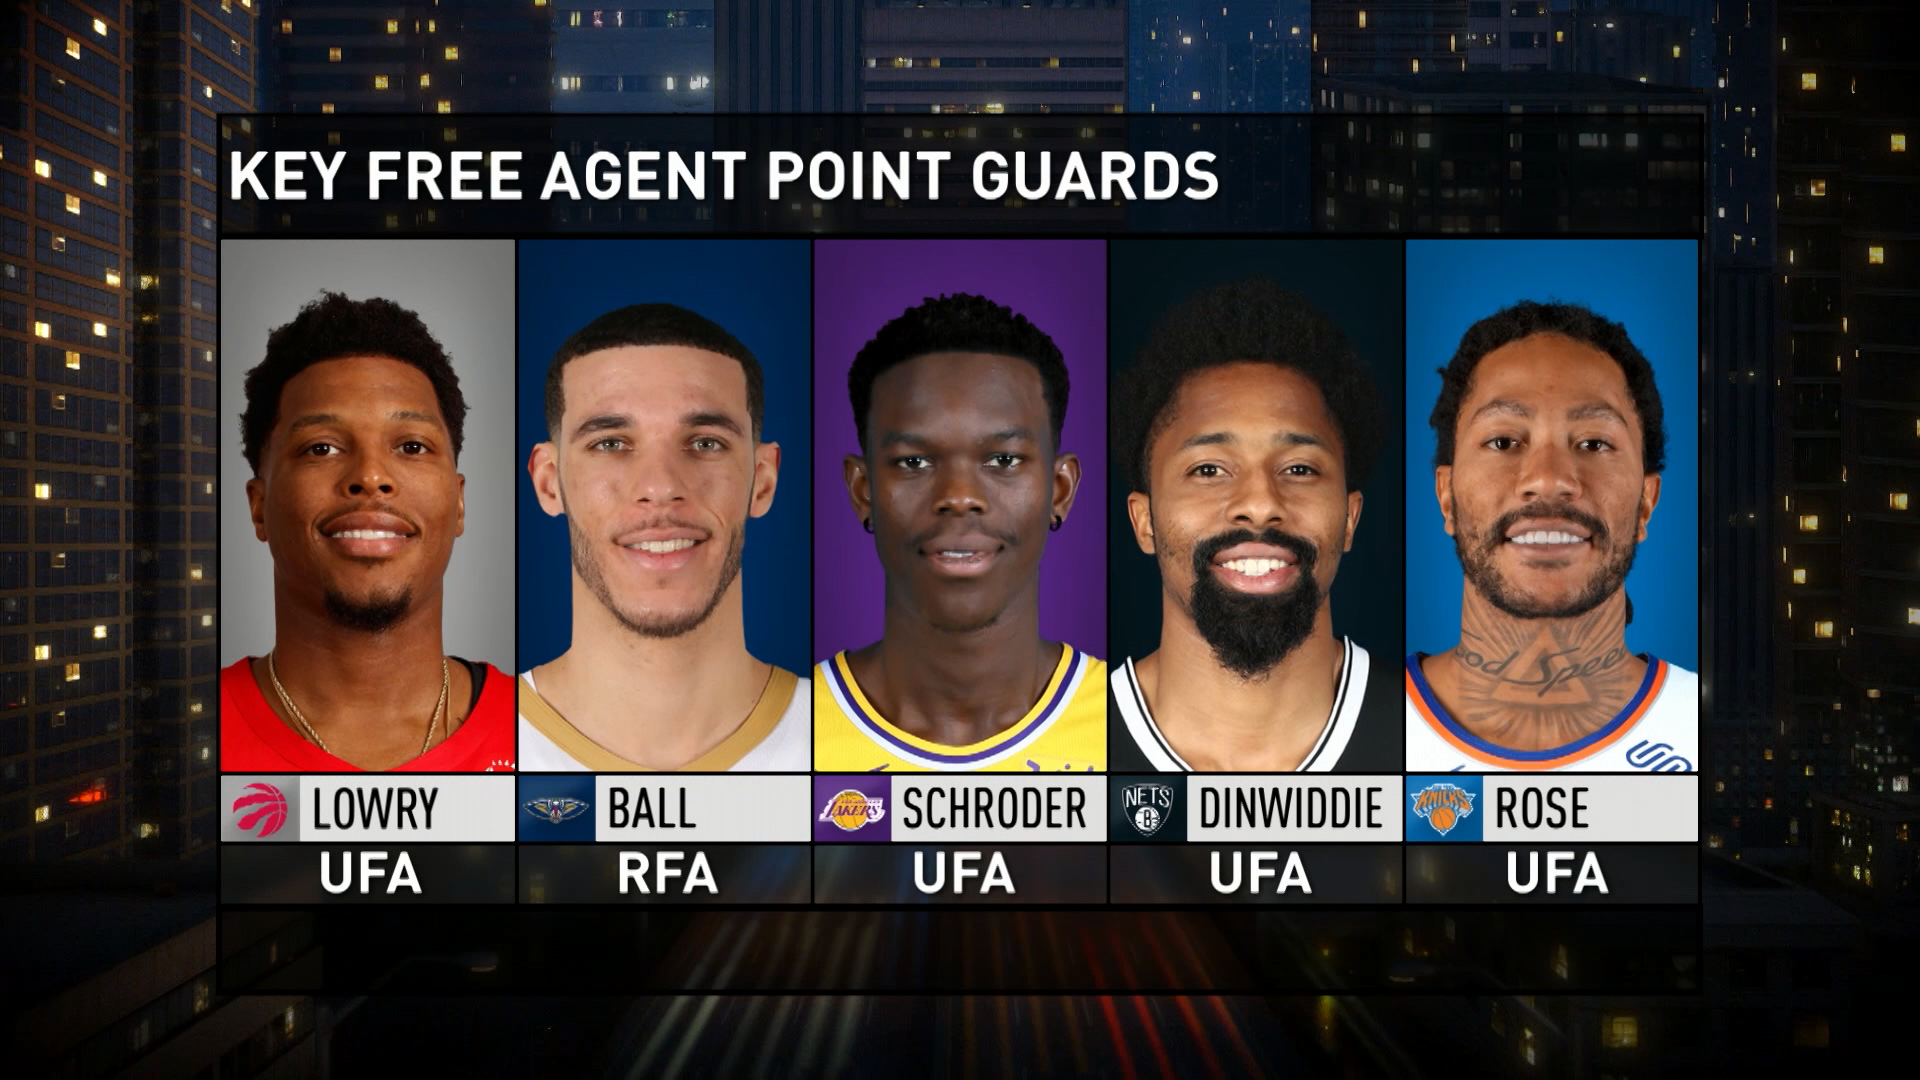 Breaking down the top point guards available to sign